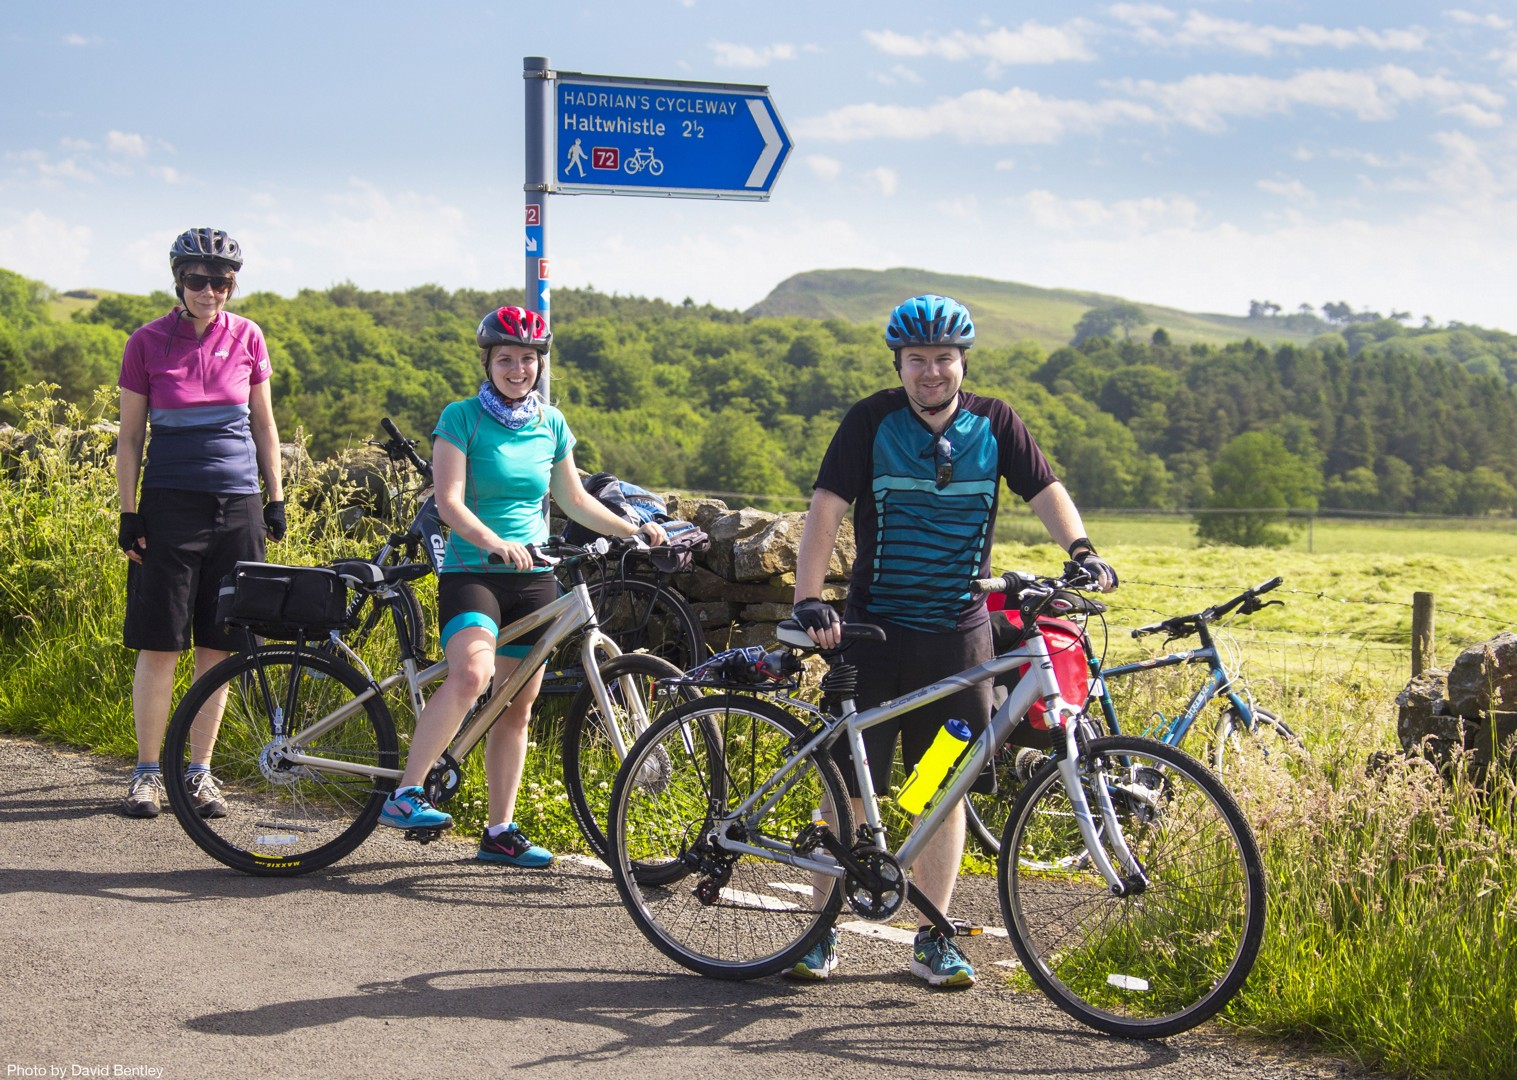 UK-Hadrians-Cycleway-Self-Guided-Leisure-Cycling-Holiday.jpg - UK - Hadrian's Cycleway - 2 Days Cycling - Self-Guided Leisure Cycling Holiday - Leisure Cycling